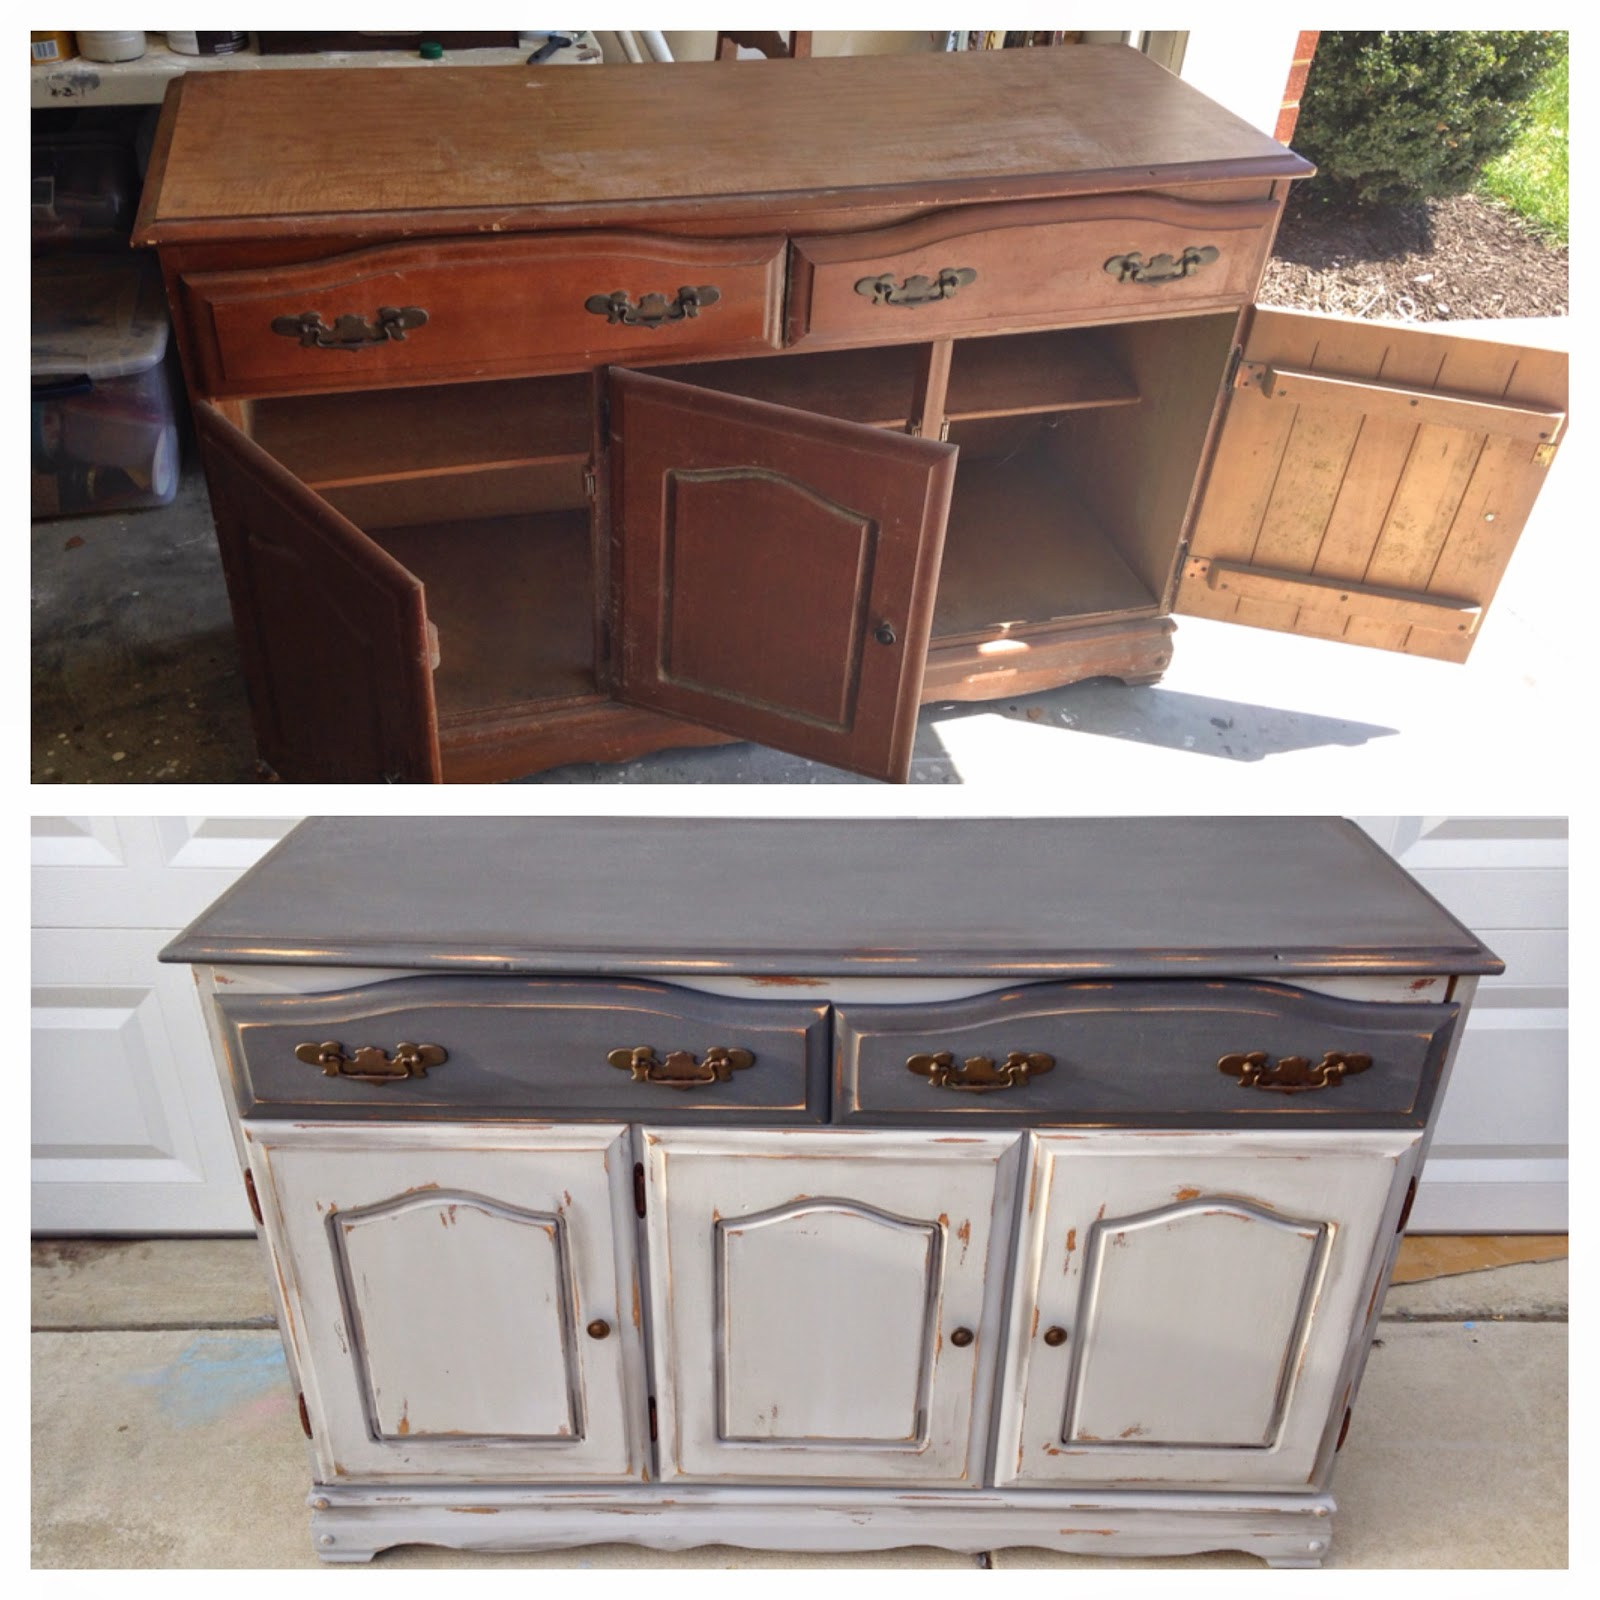 Upcycled Furniture: The Top Drawer Upcycled Furniture